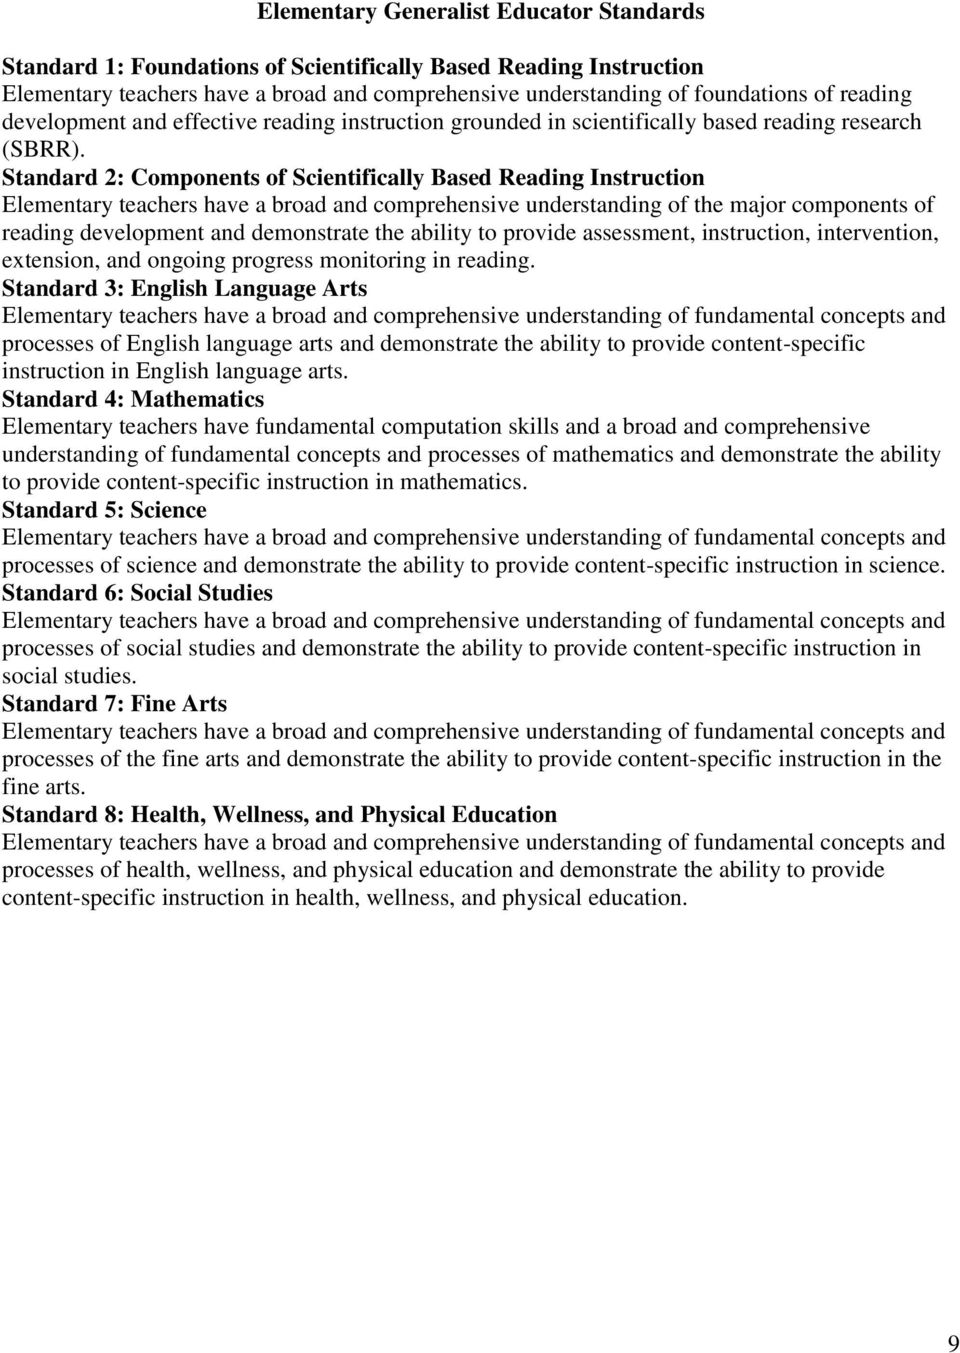 Standard 2: Components of Scientifically Based Reading Instruction Elementary teachers have a broad and comprehensive understanding of the major components of reading development and demonstrate the